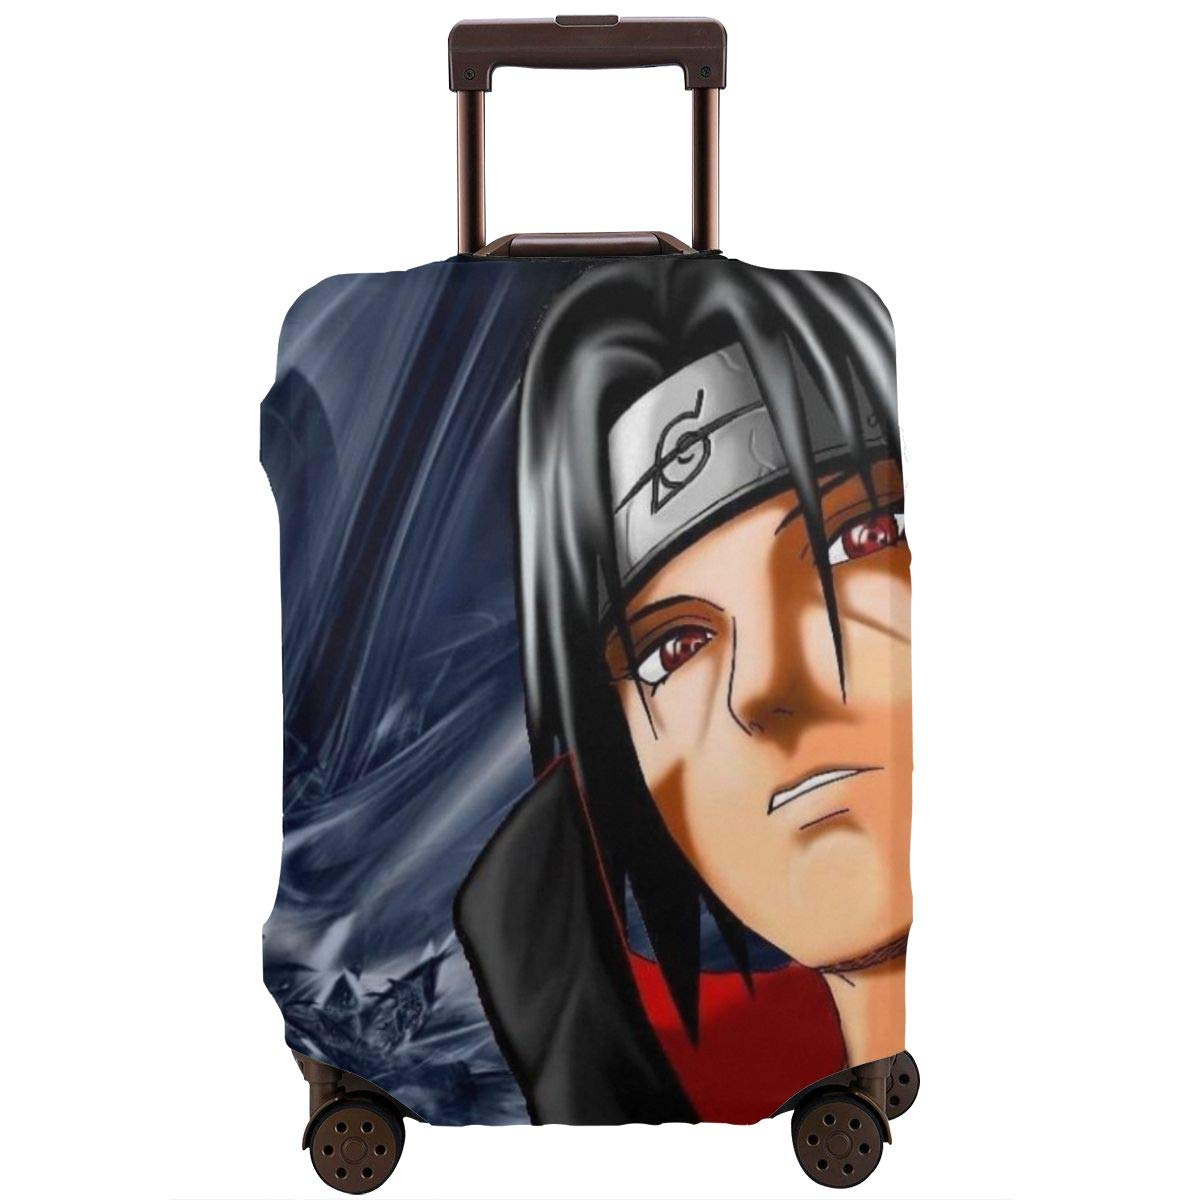 Naruto Suitcase Protector Travel Luggage Cover Fit